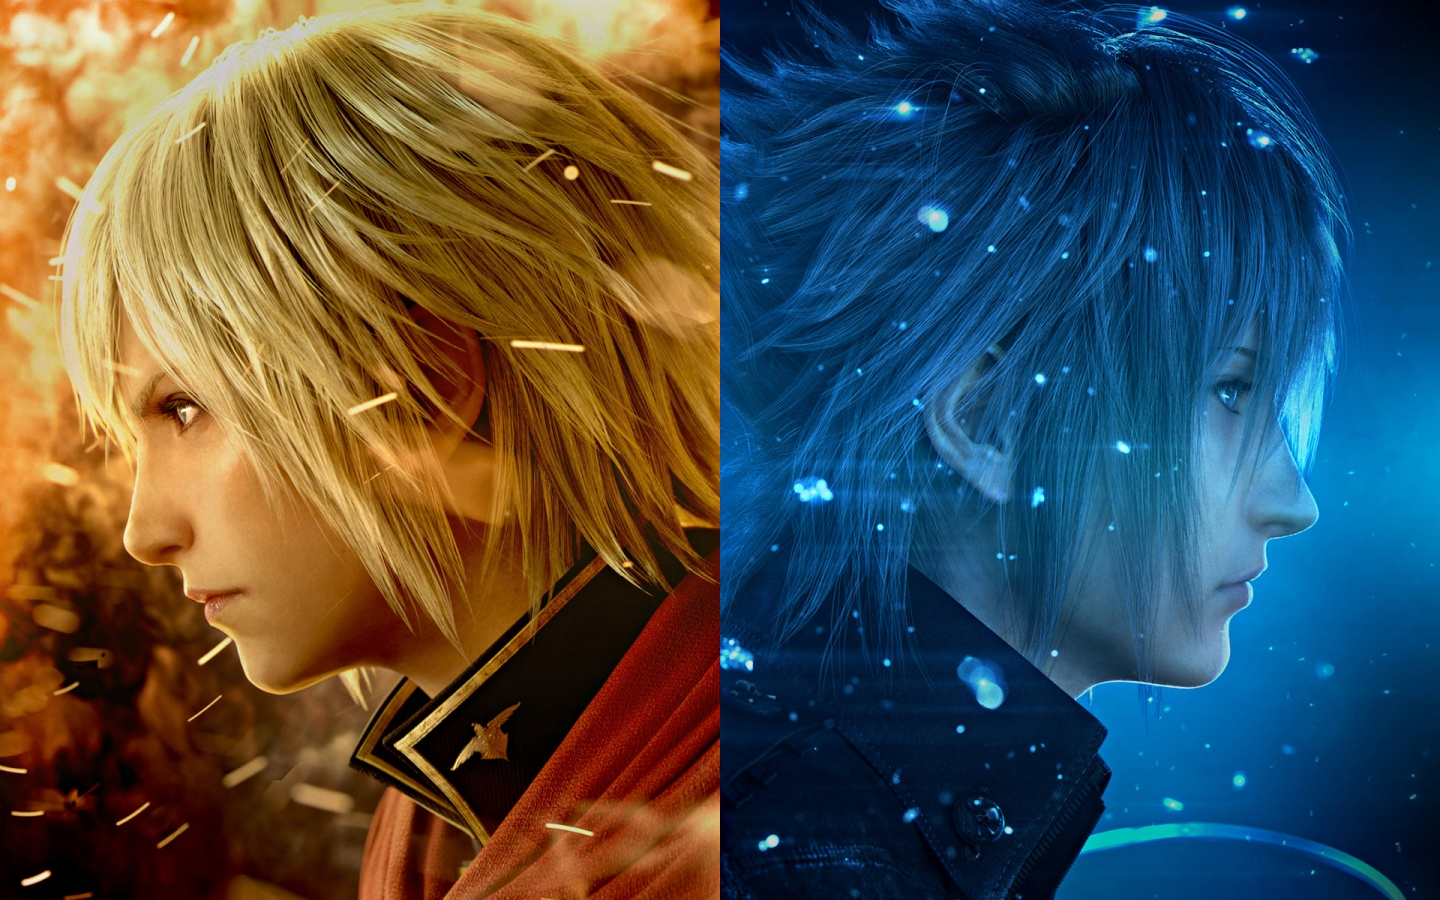 Final Fantasy Type 0 HD Wallpapers HD Wallpapers 1440x900